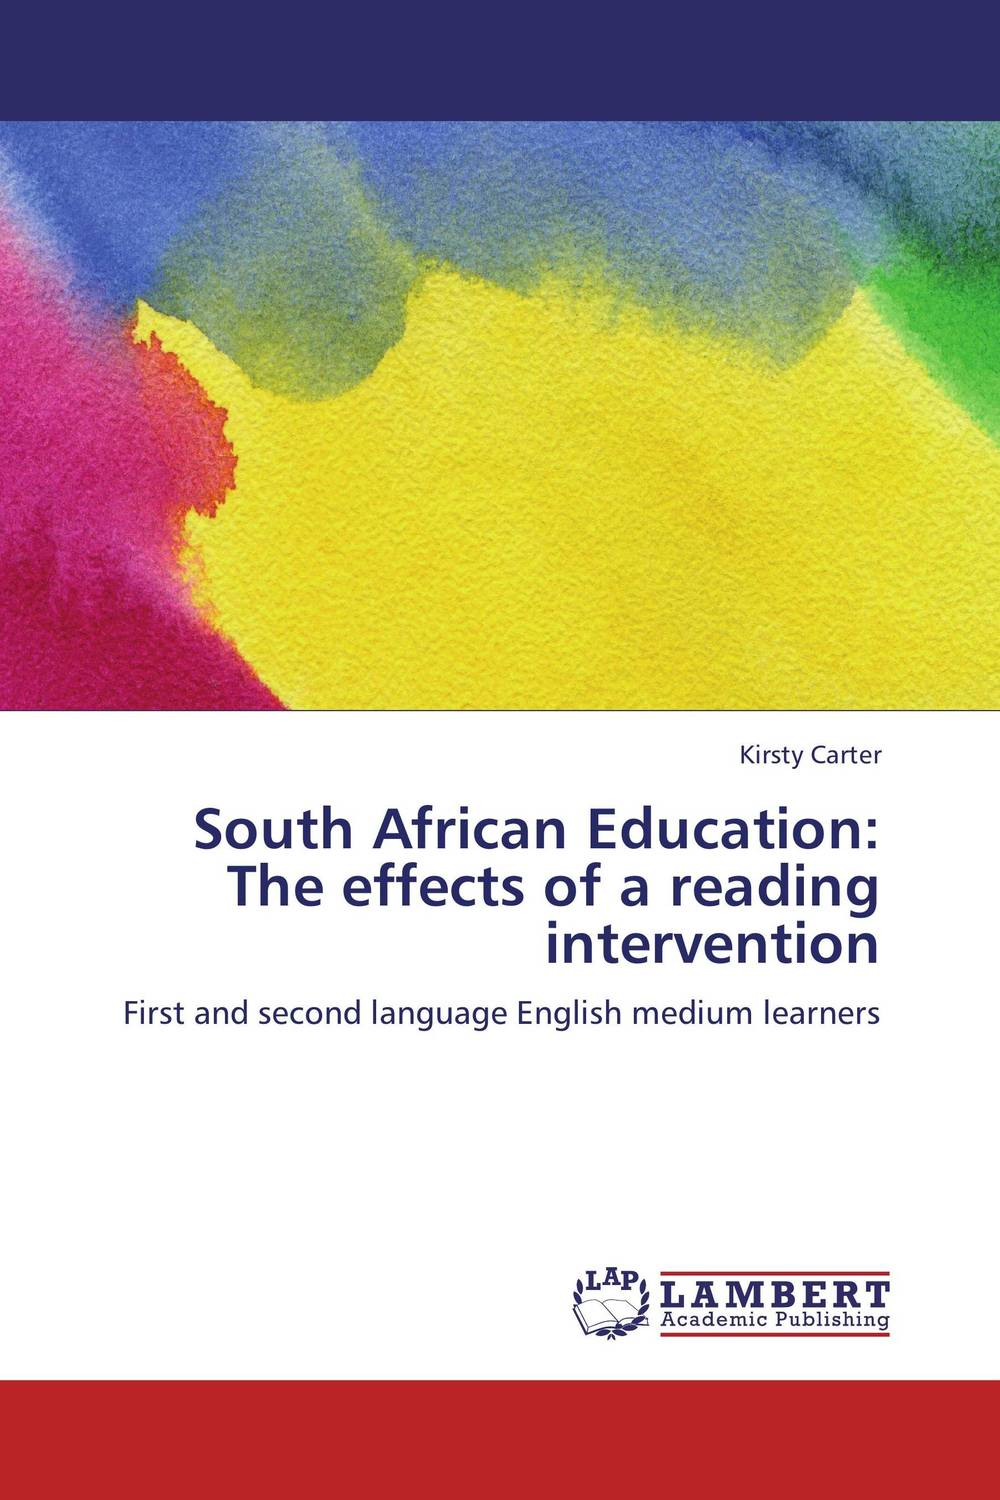 South African Education: The effects of a reading intervention